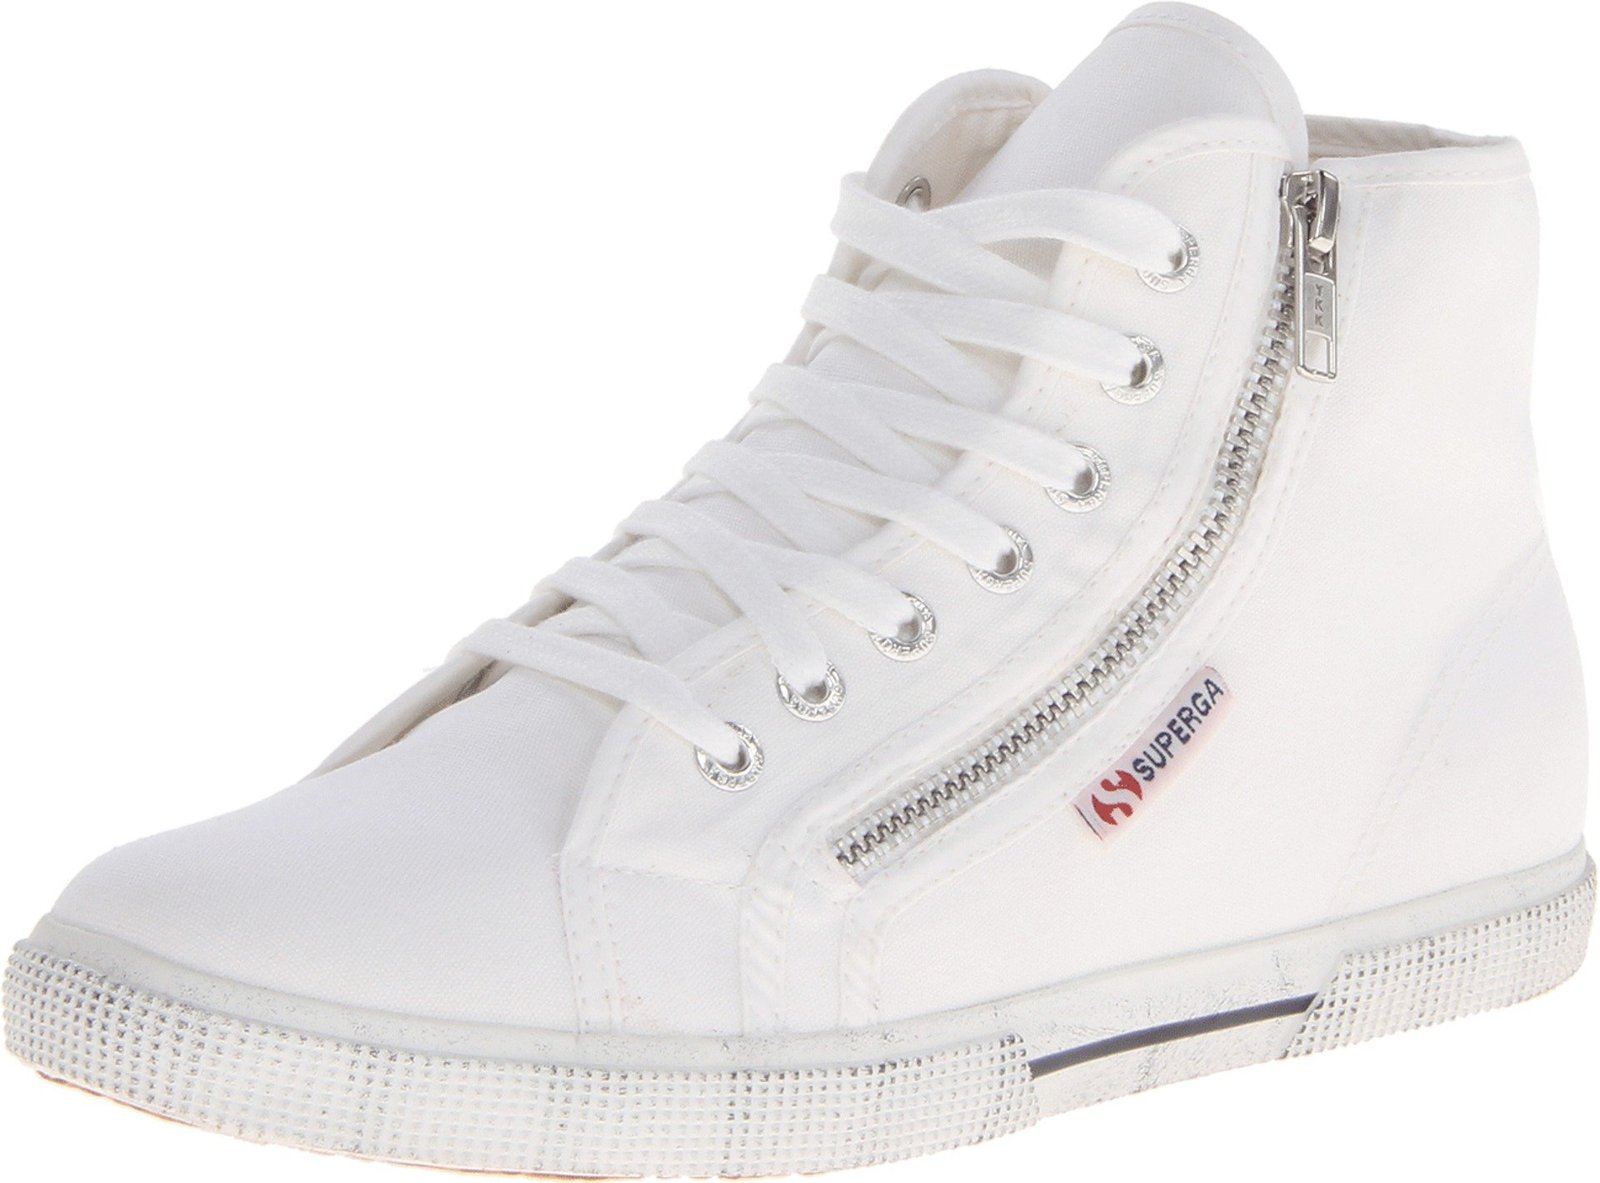 Superga Women's 2224 Cotdu Fashion Sneaker, White, 41.5 EU/10 M US